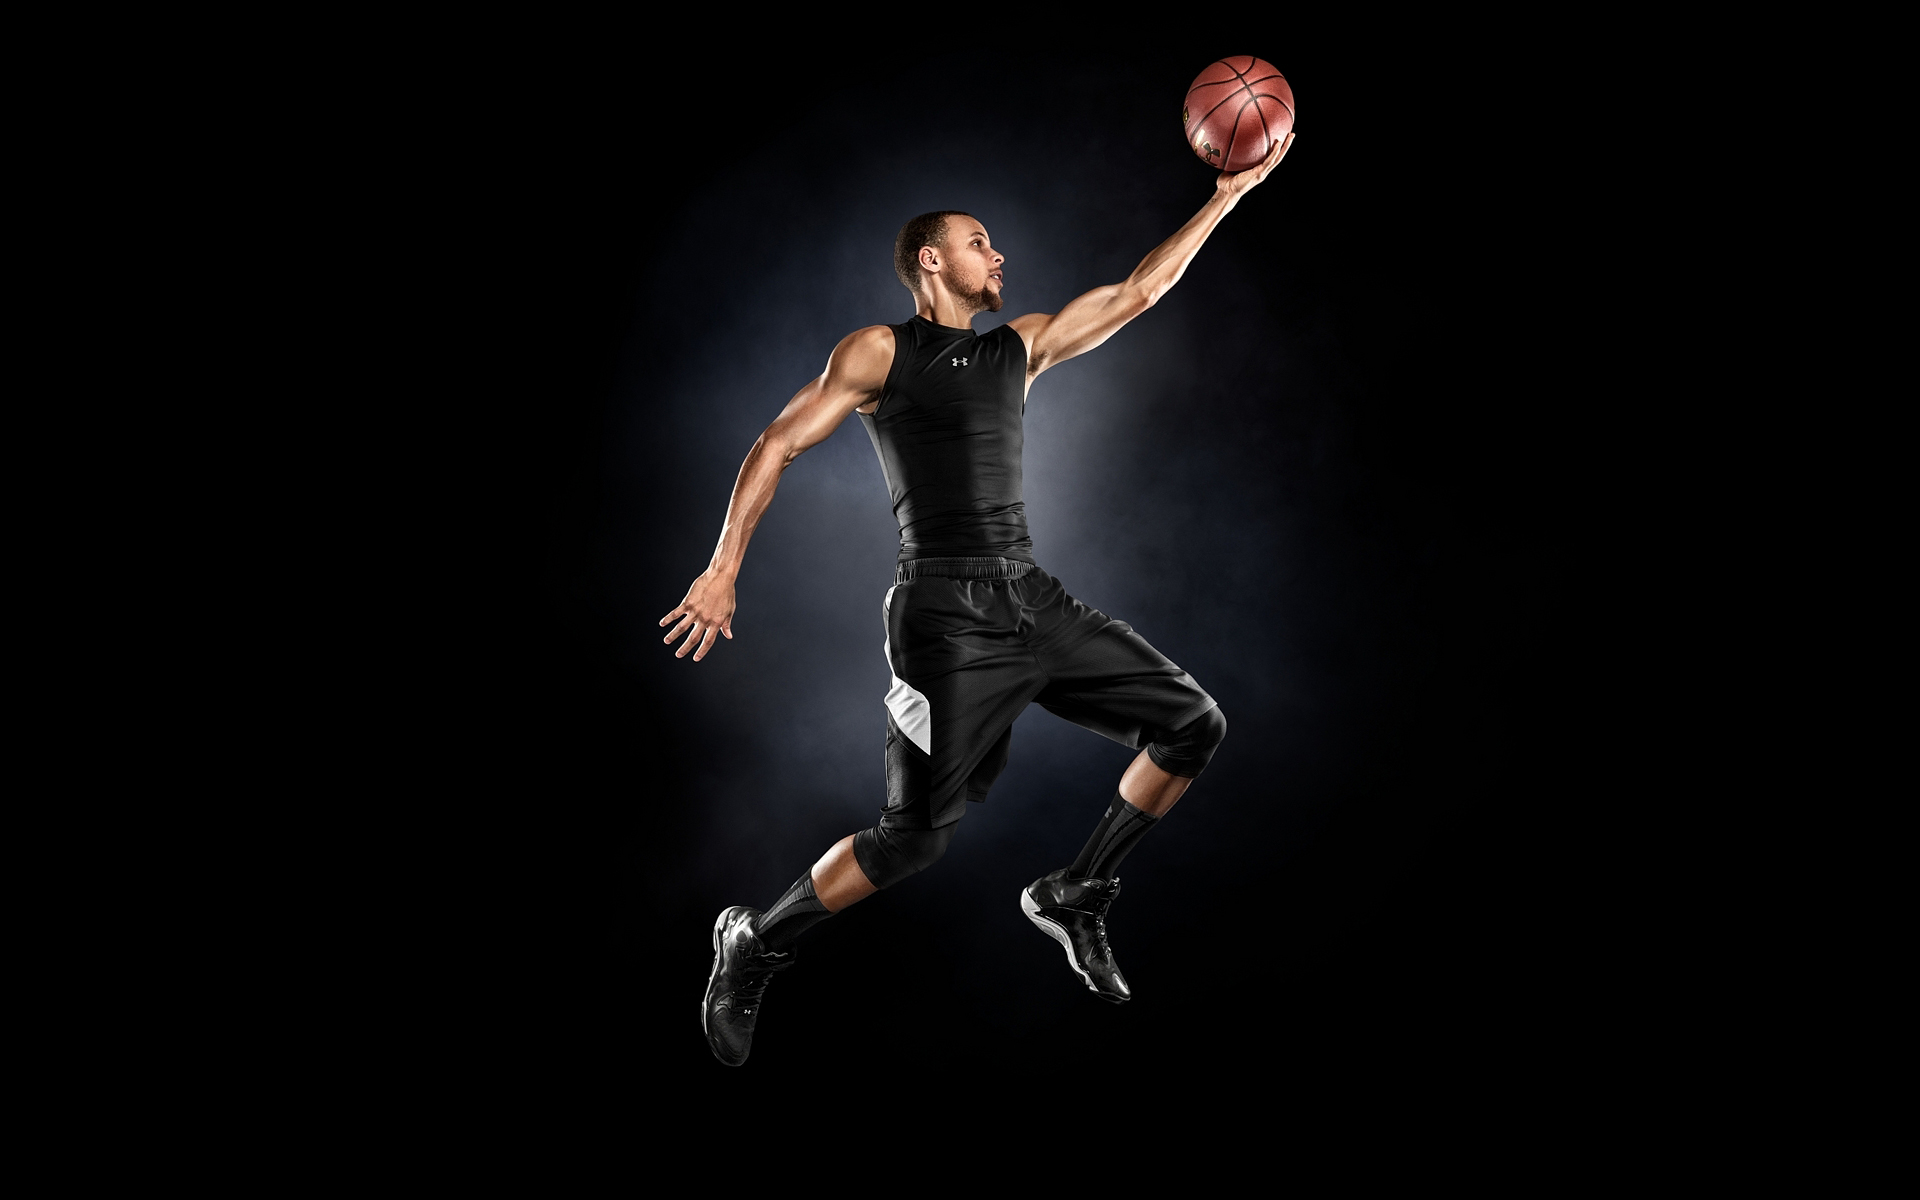 Stephen Curry advertising campaign by Blair Bunting